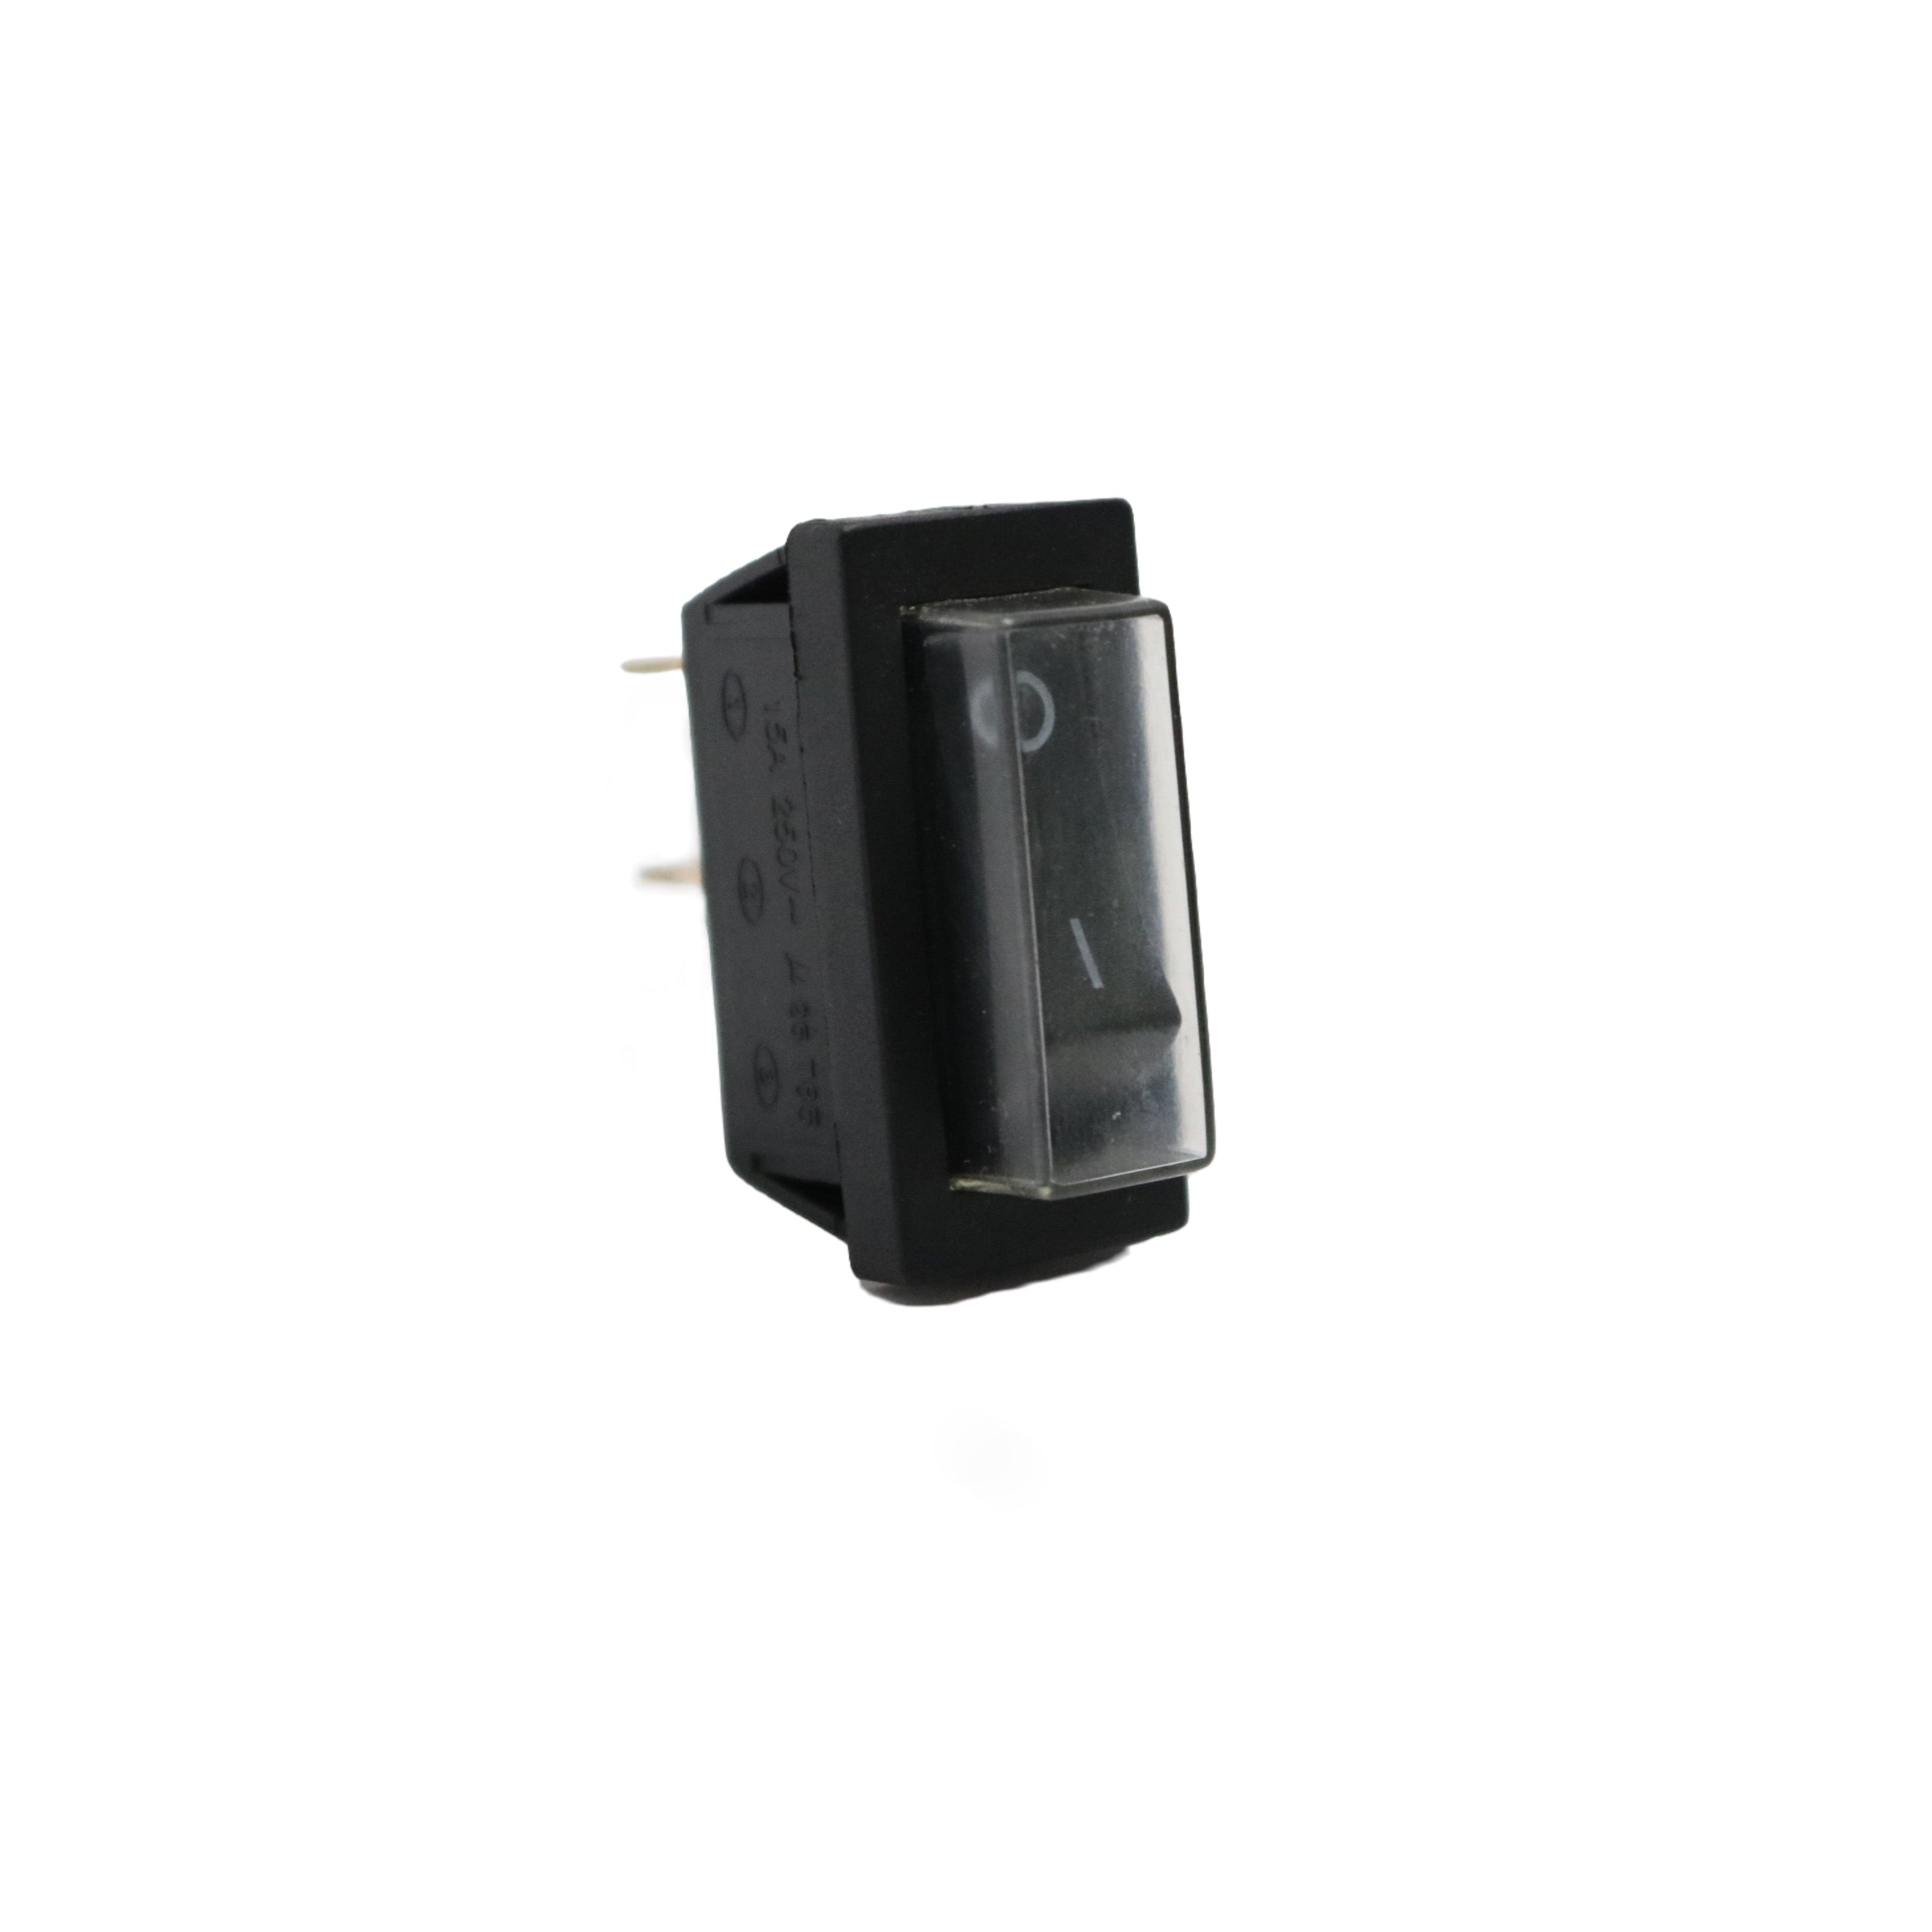 Summerset Black Waterproof Light Switch (TRL, TRLD, STG, Excalibur)